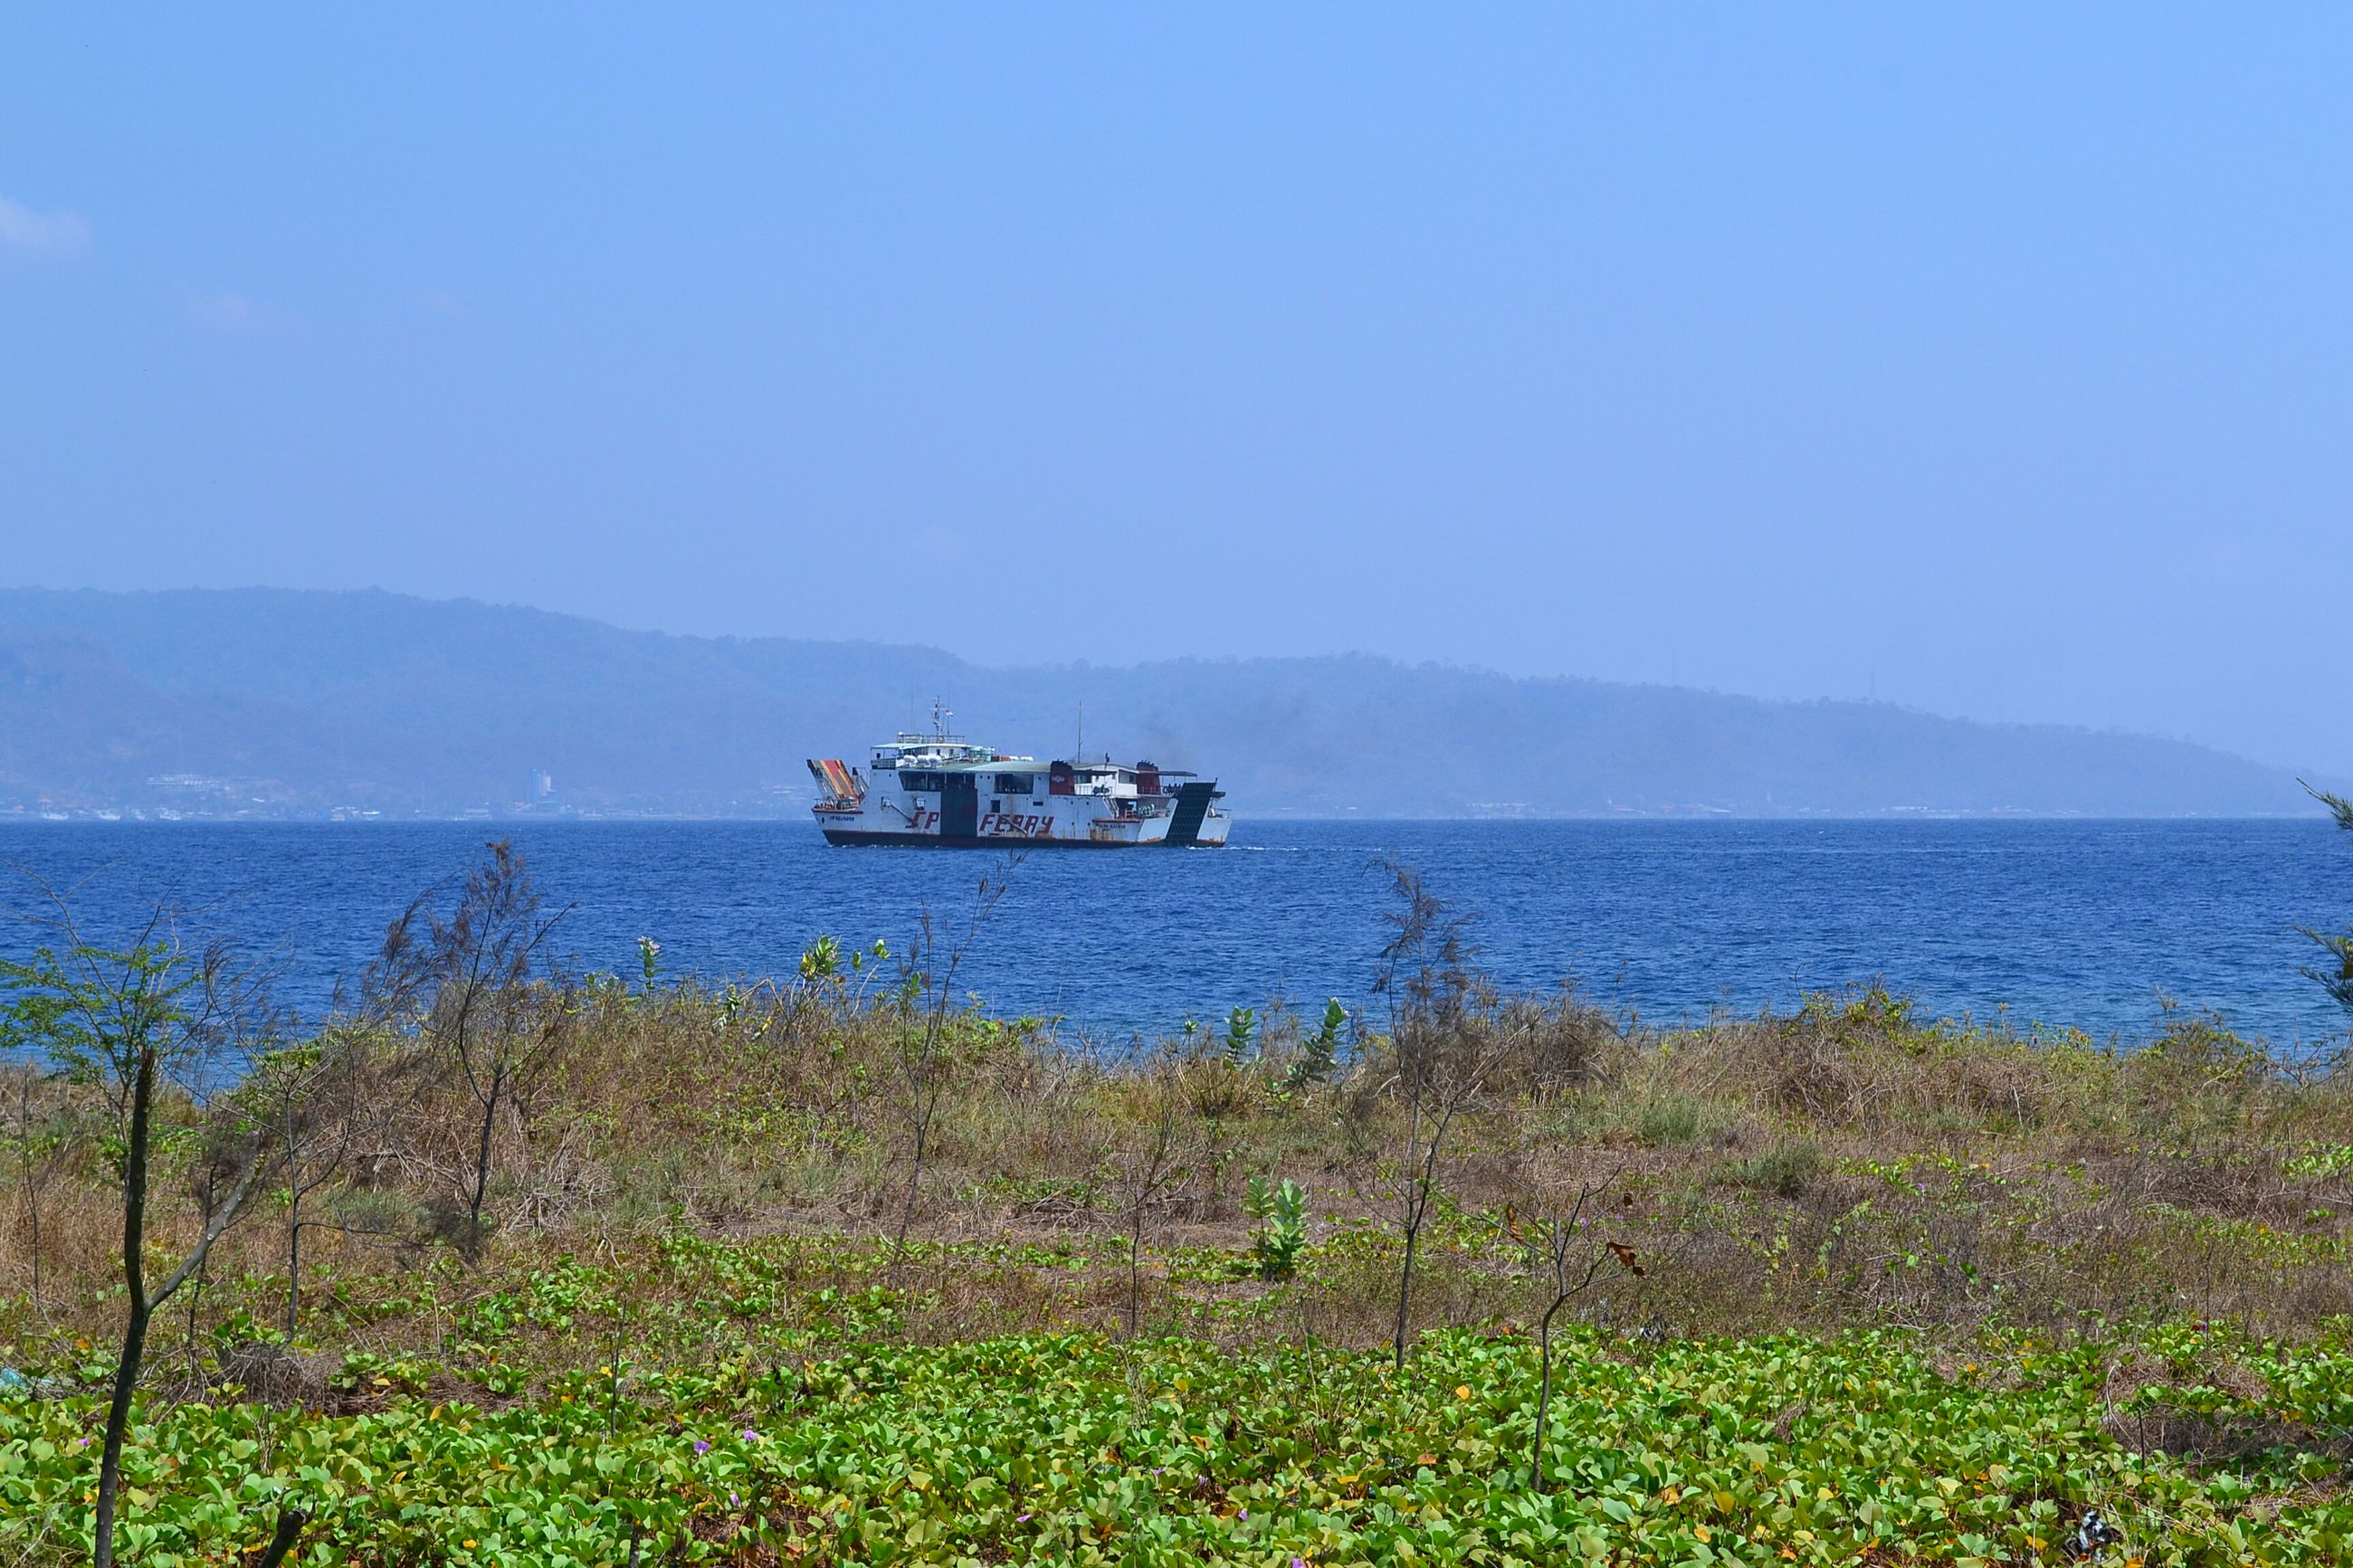 water, clear sky, nautical vessel, transportation, sea, copy space, mode of transport, tranquil scene, beauty in nature, tranquility, scenics, blue, boat, nature, mountain, plant, horizon over water, growth, sky, grass